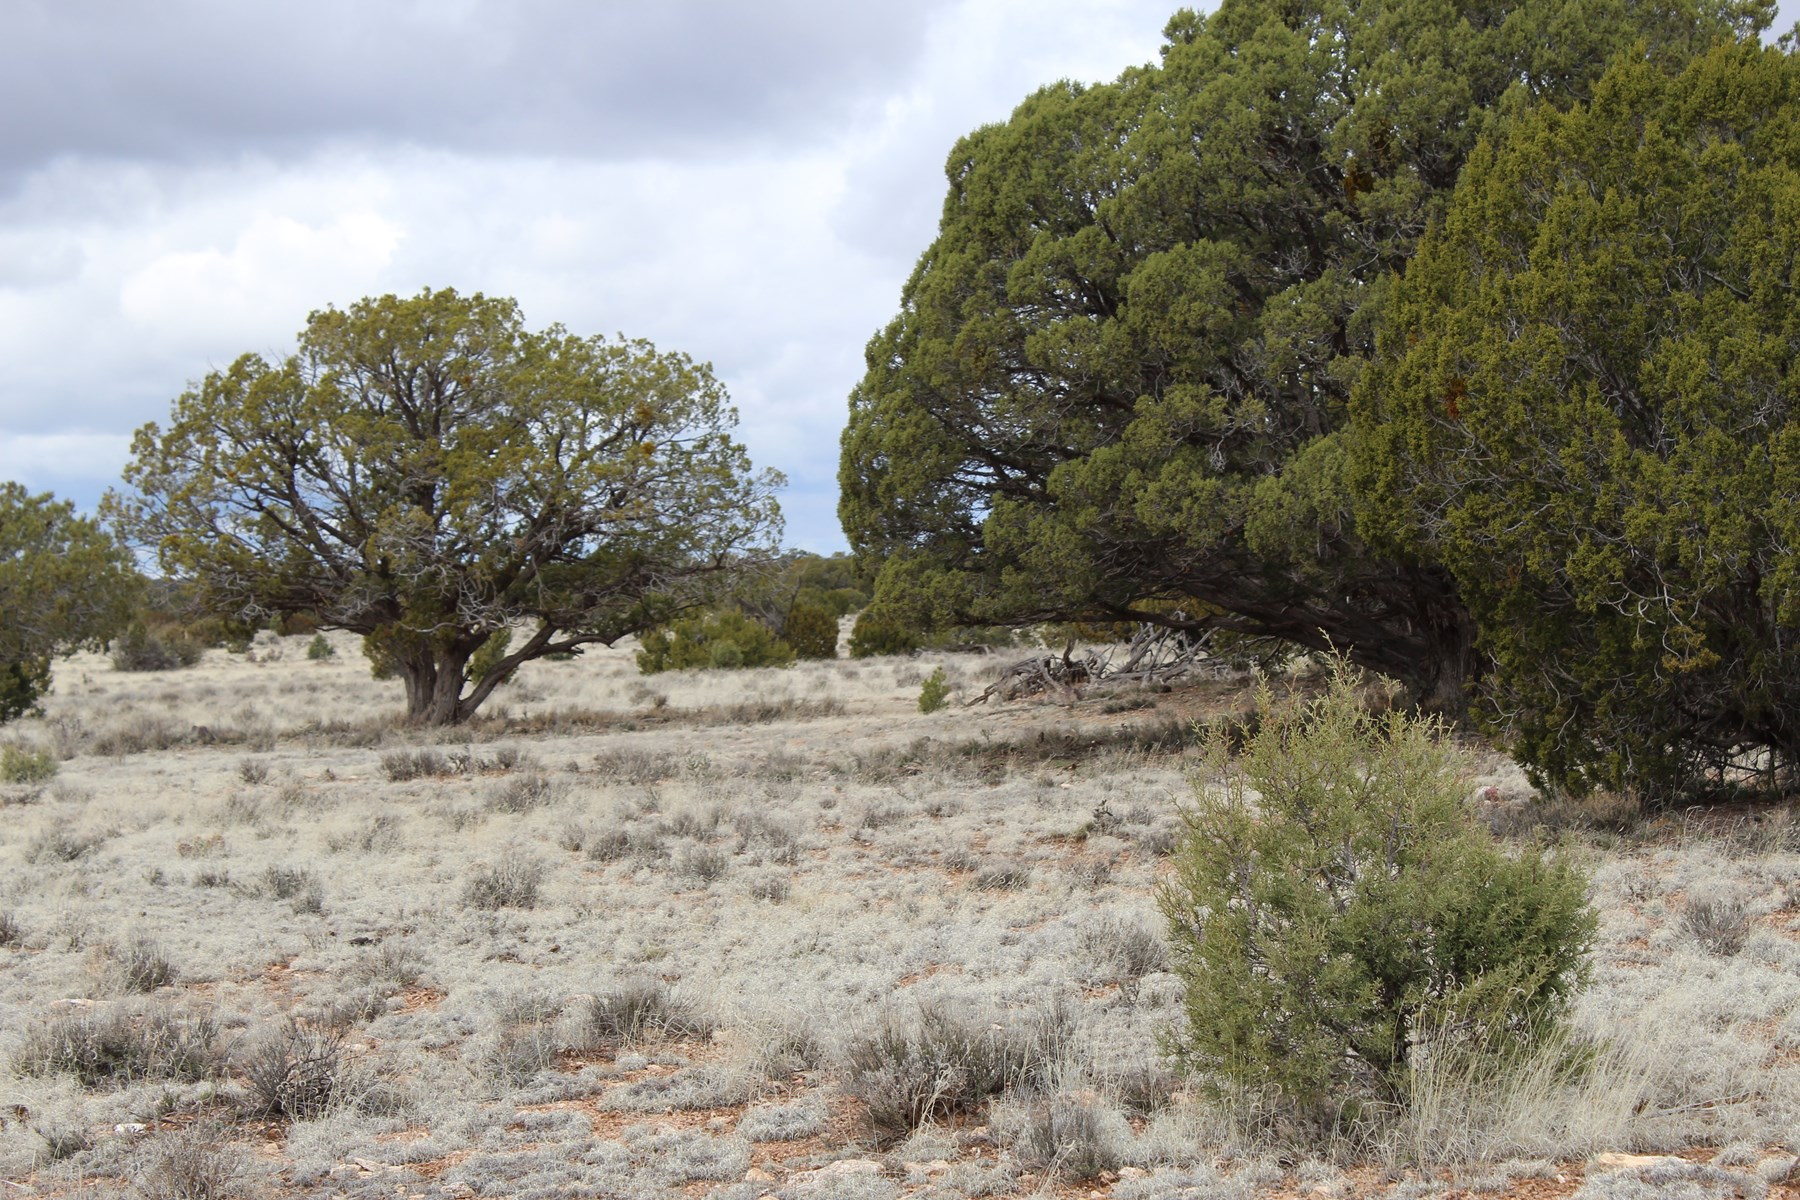 40 Acres of Mountain Property for Sale in Seligman AZ